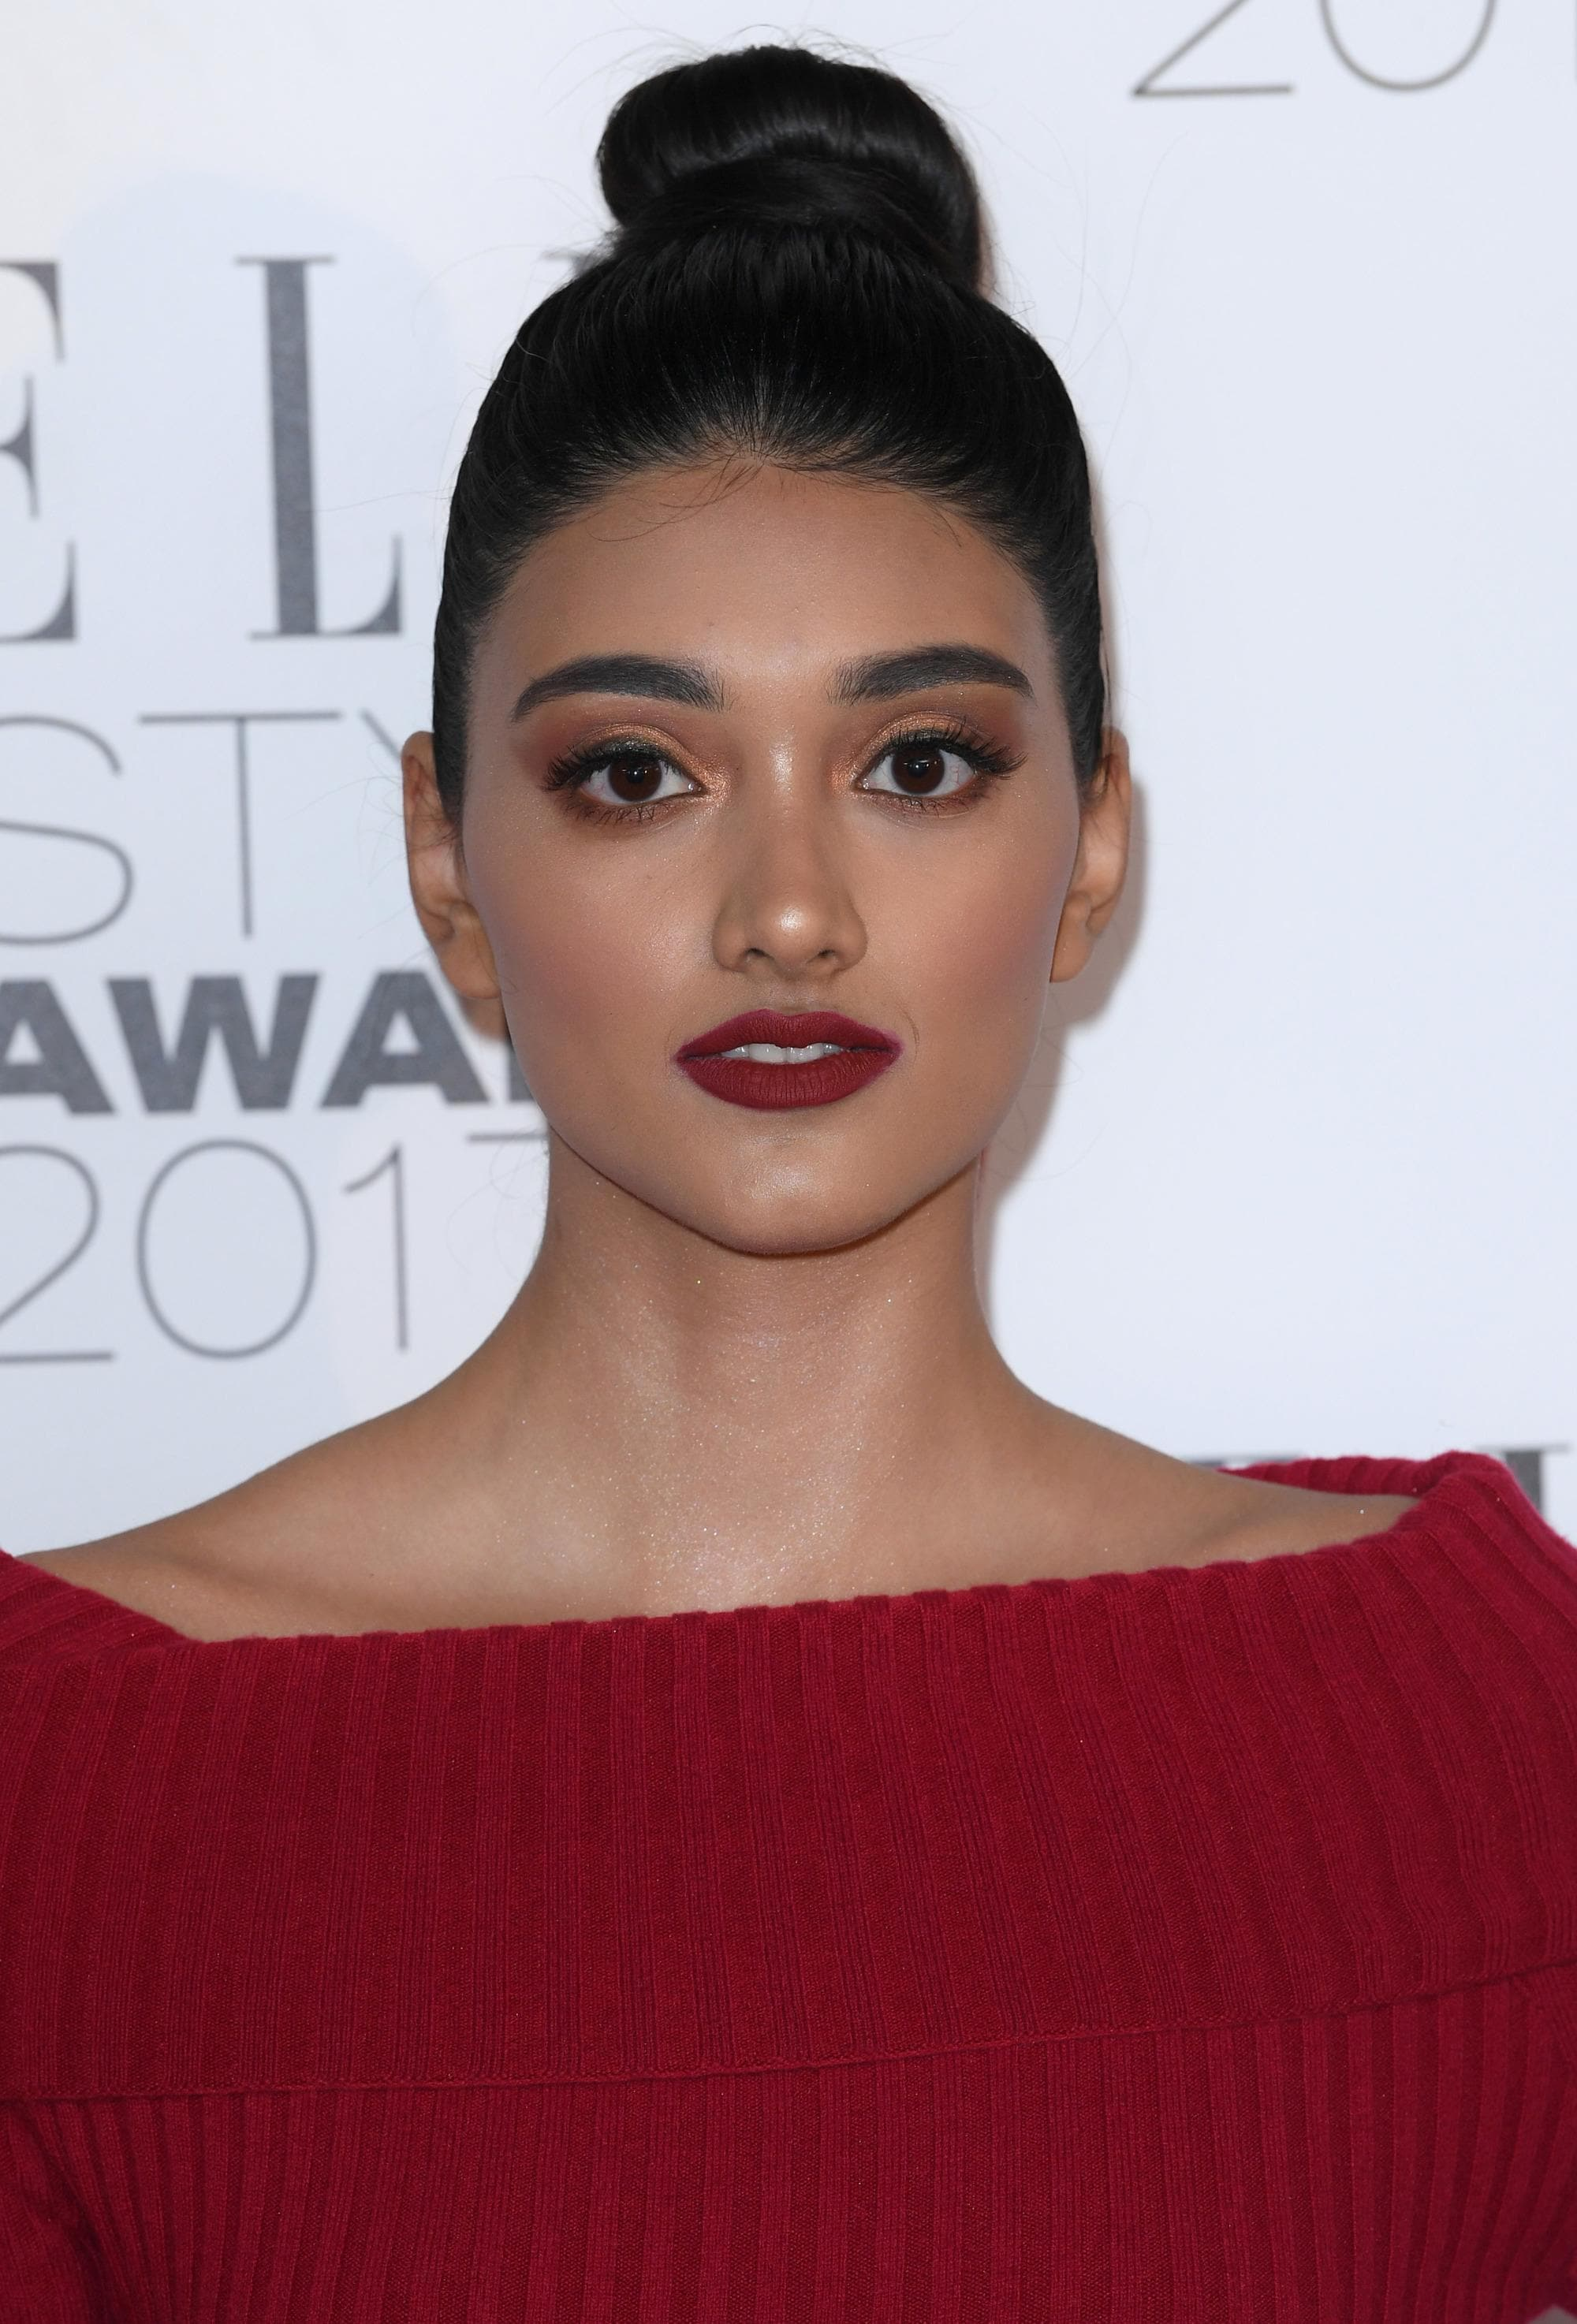 Neelam Gill at the elle style awards in an off the shoulder red dress with her dark hair styled into a top knot bun